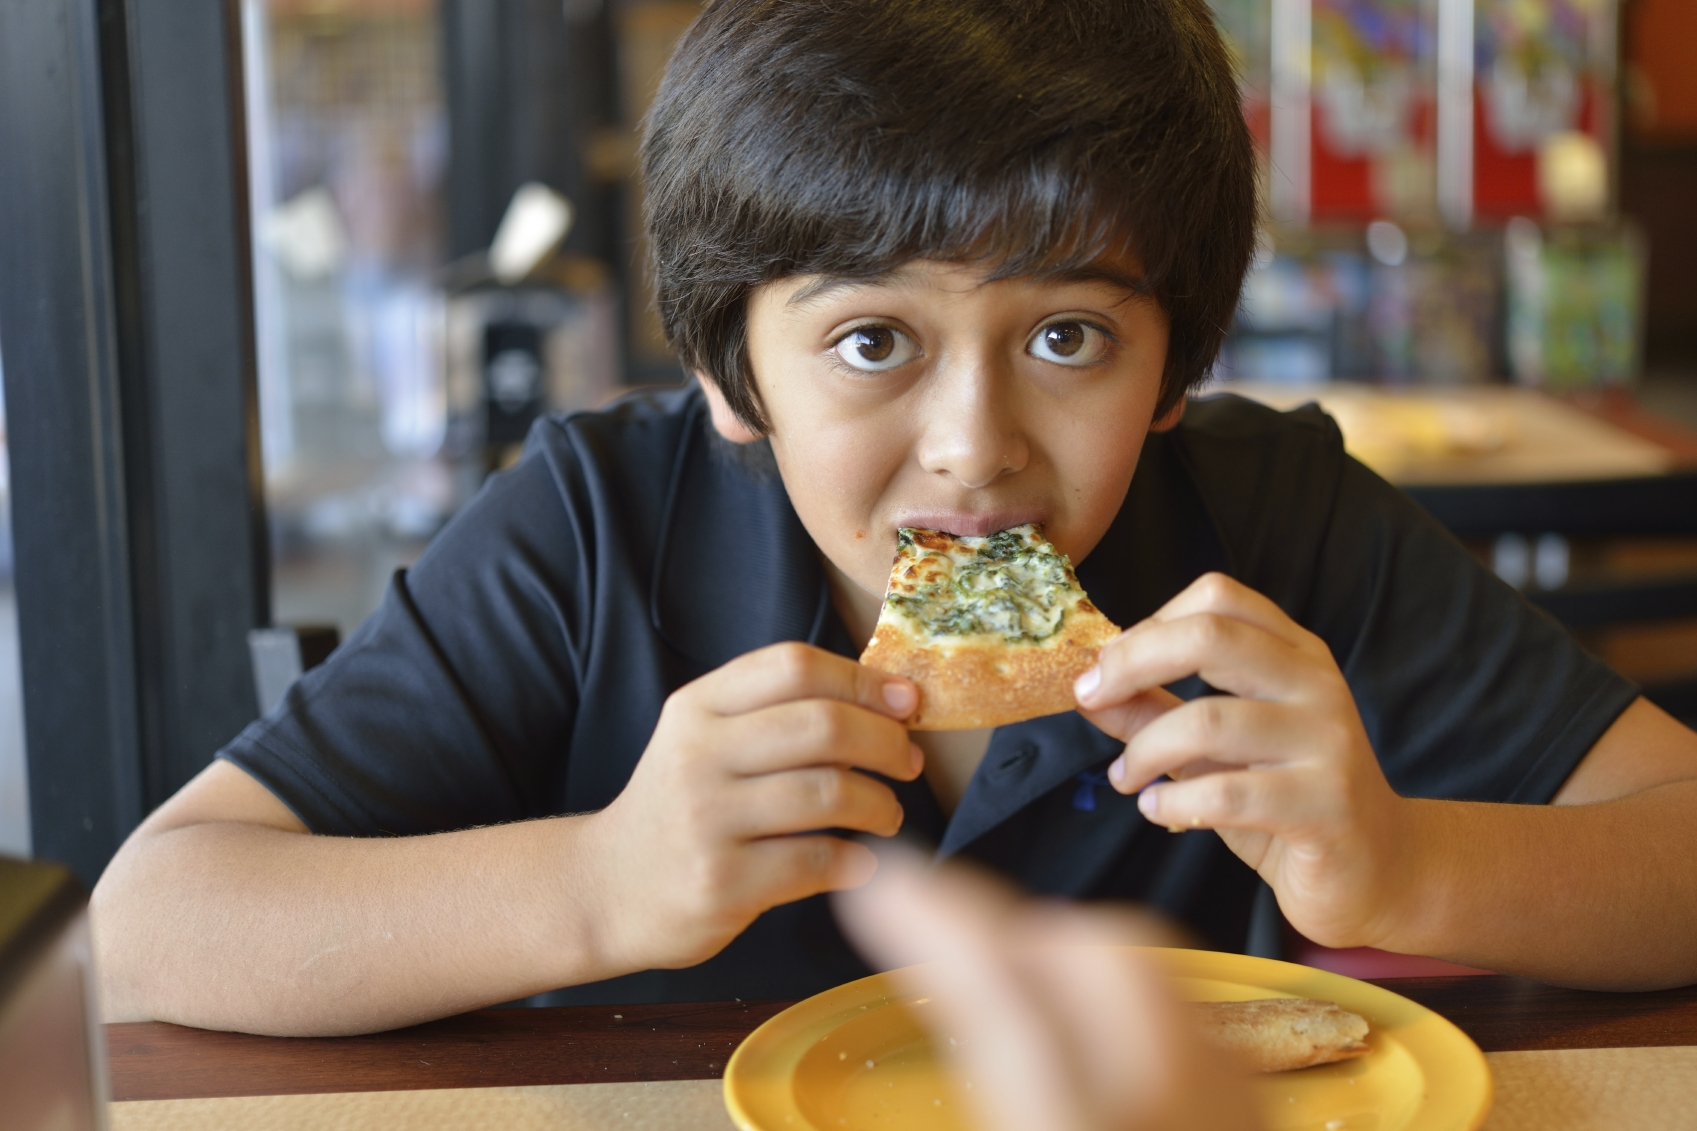 10 ways to sneak spinach into your child's food